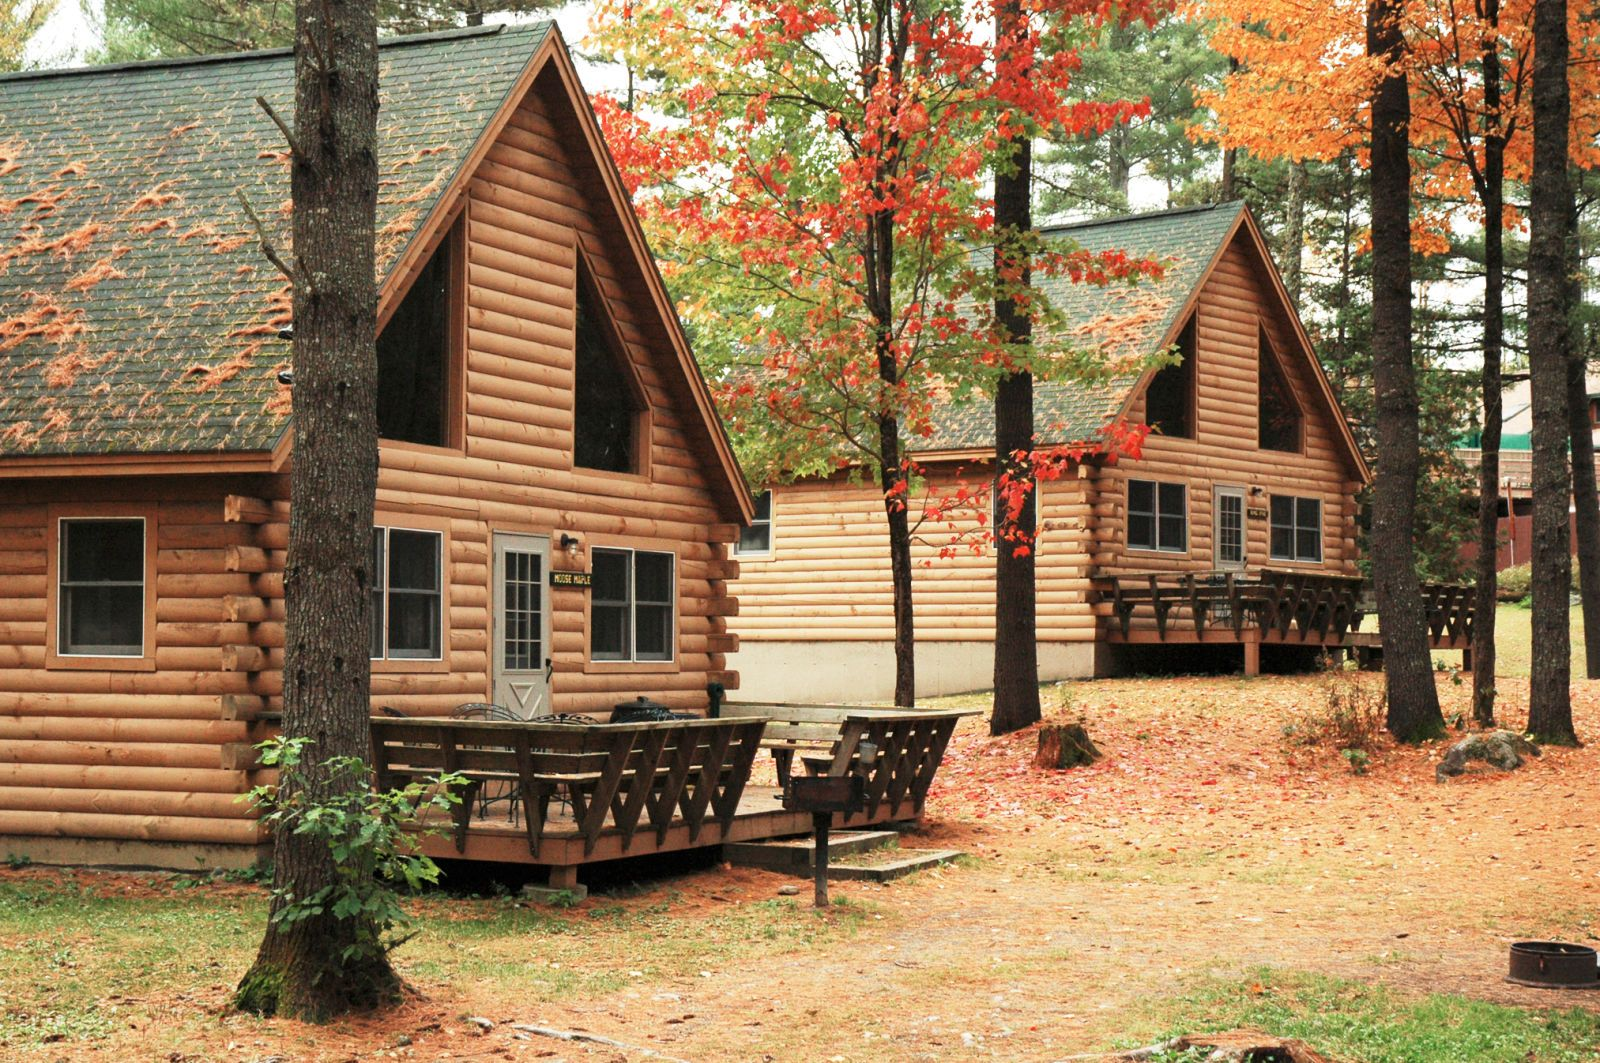 These Log Cabins Are Classic And Affordable To Boot! (northernoutdoors.com)